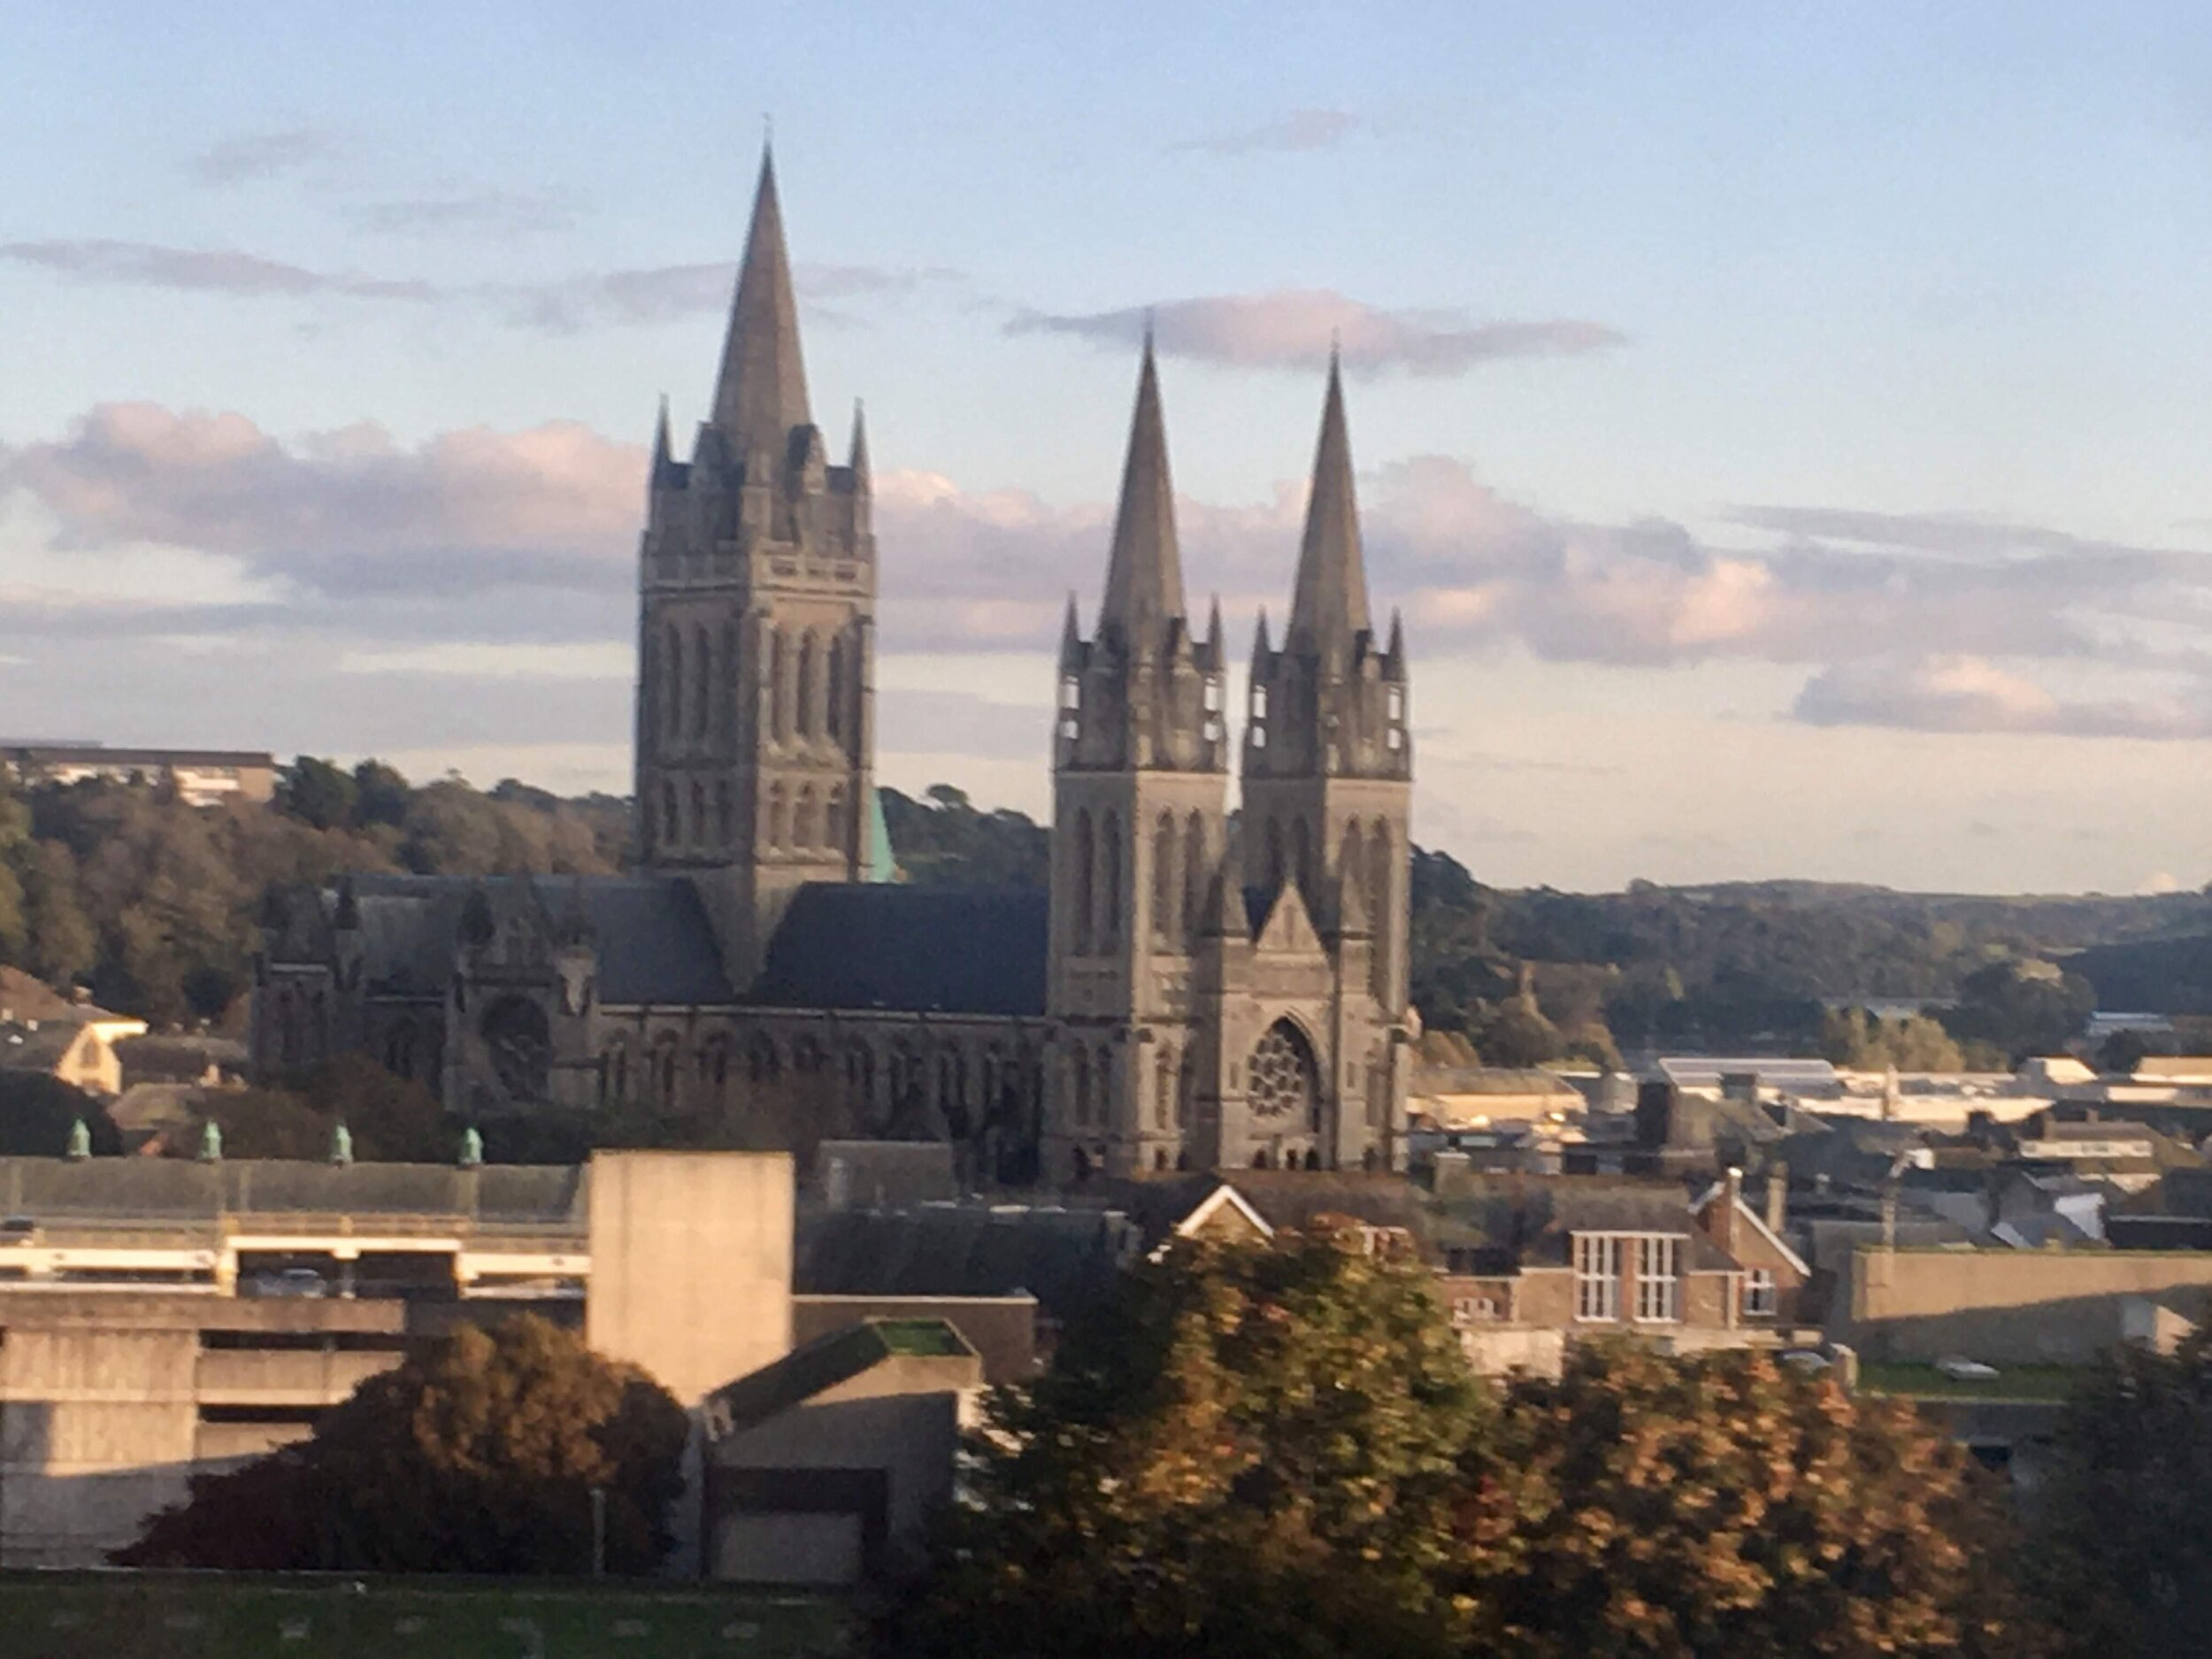 The cathedral at Truro was one even I'd consider going to